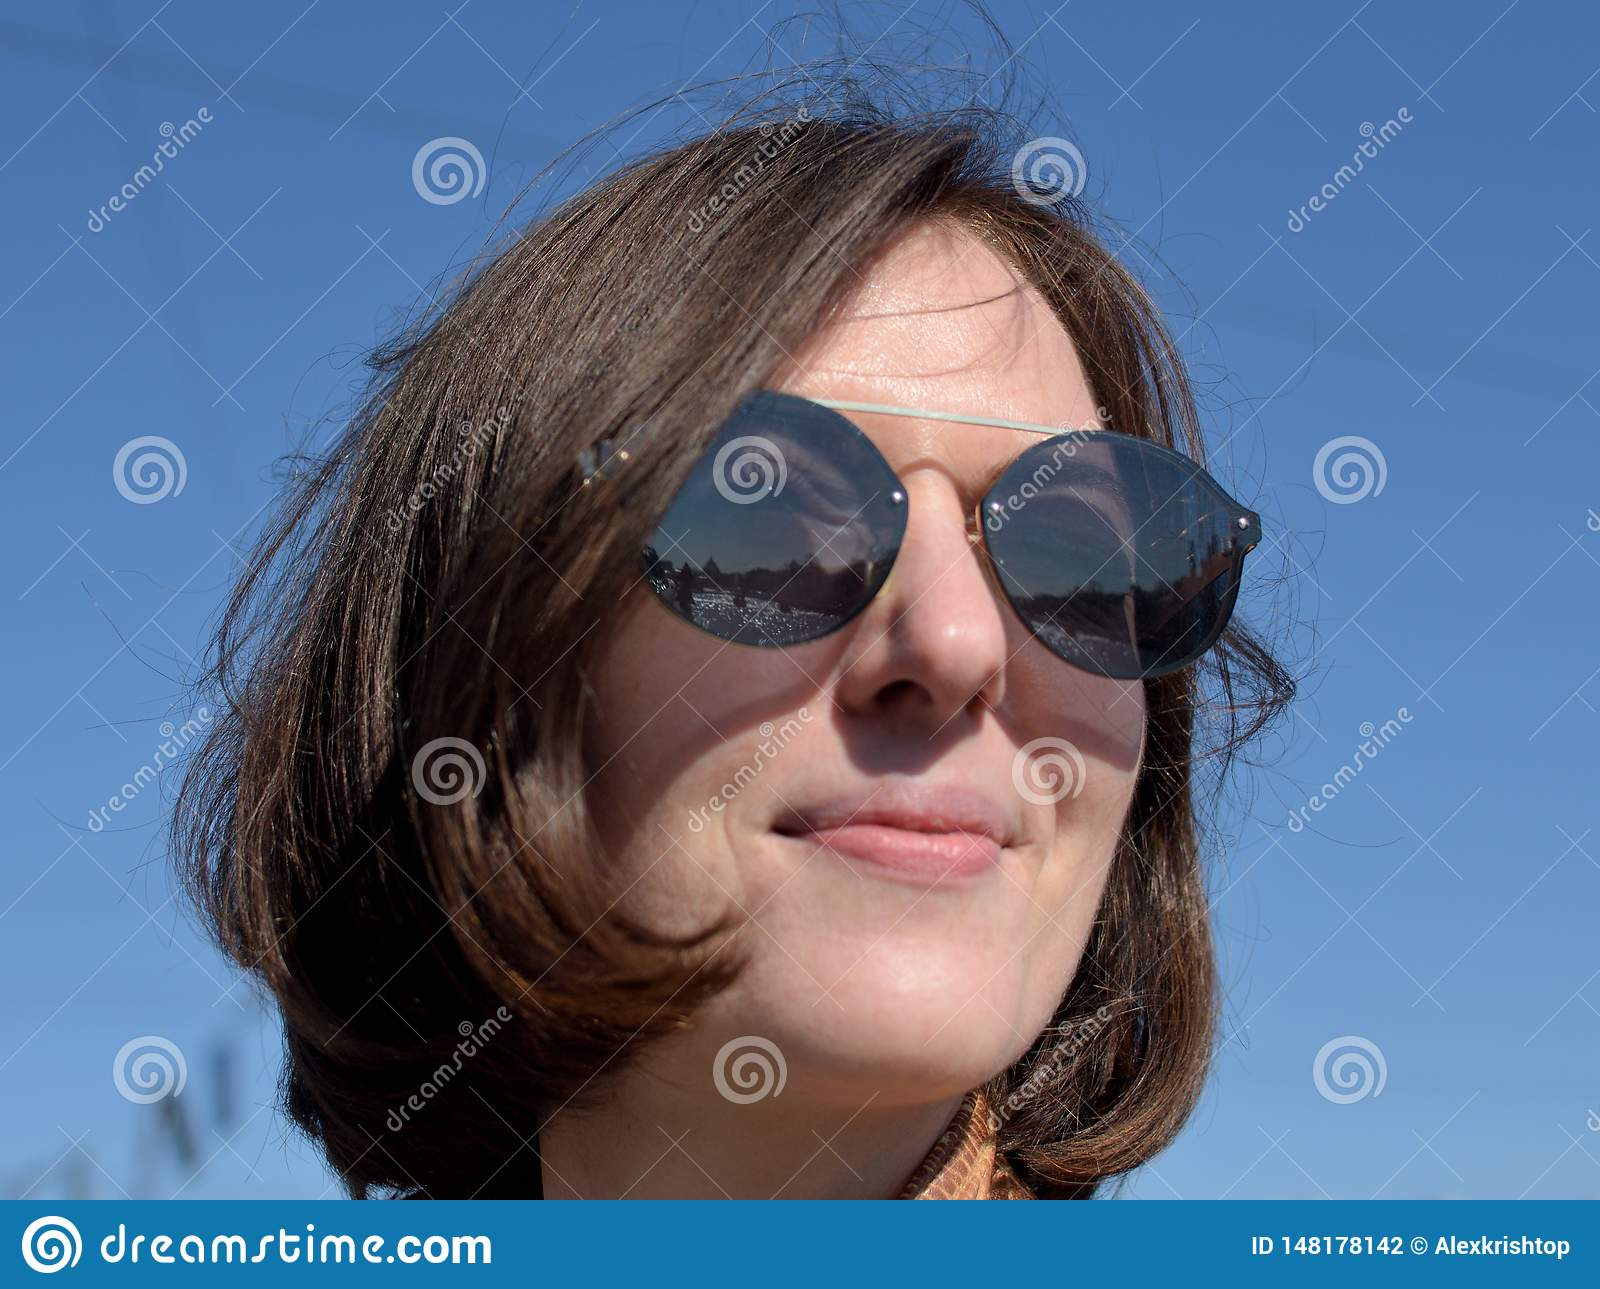 Close-up portrait of a smiling young lady tourist in Saint Petersburg Russia wearing sunglasses